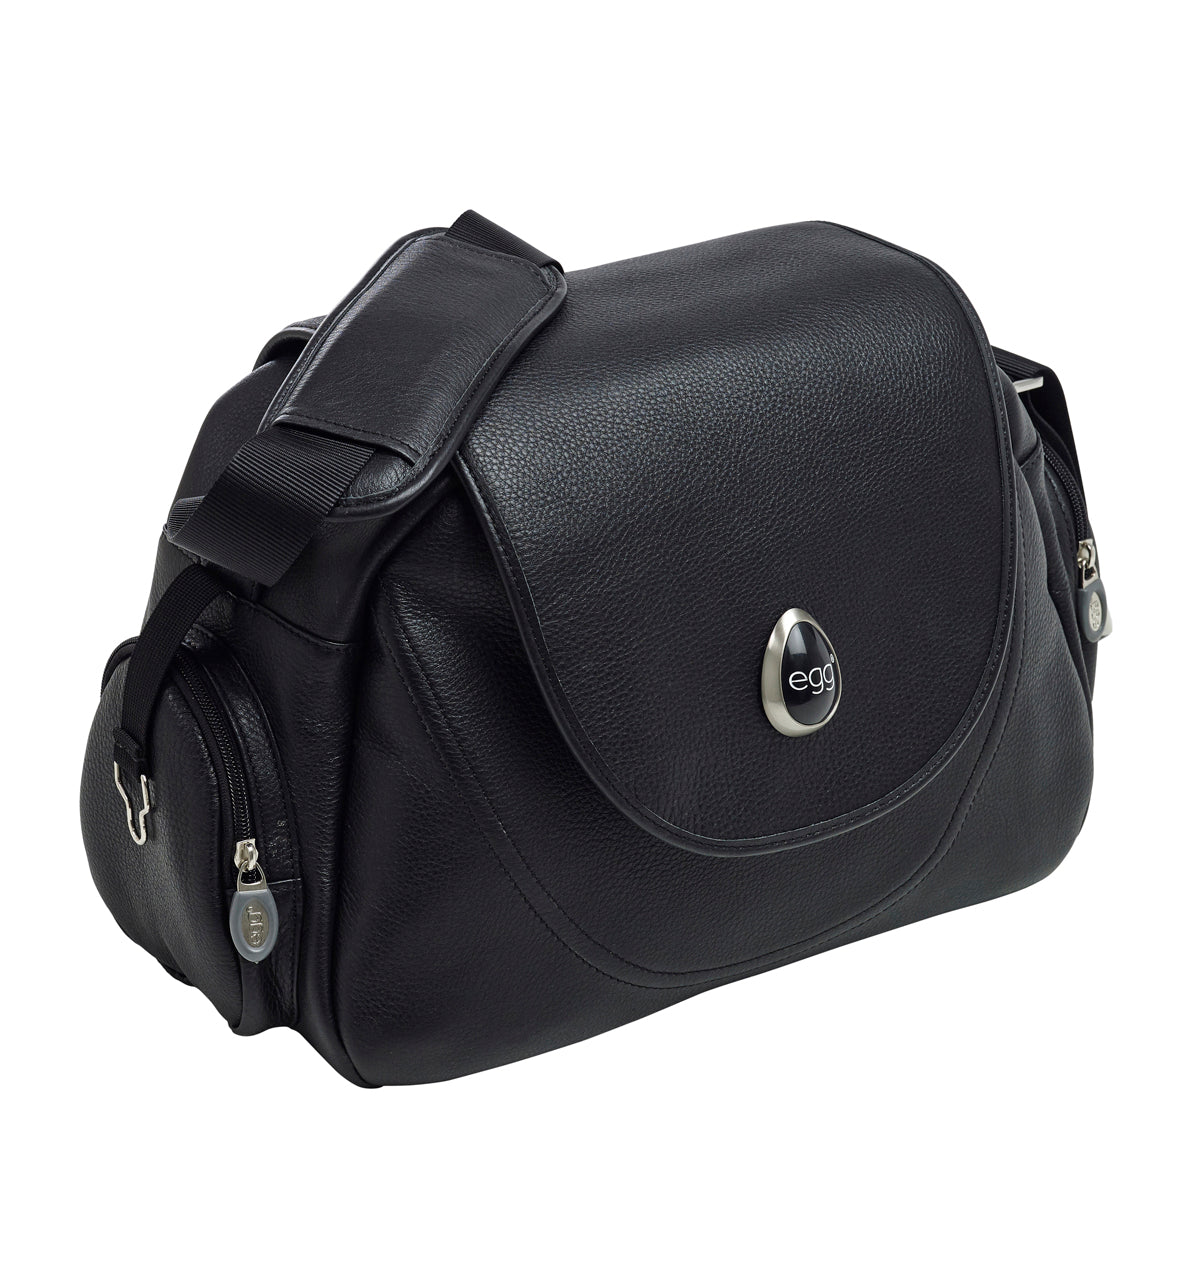 Egg Changing Bag - Black Leather